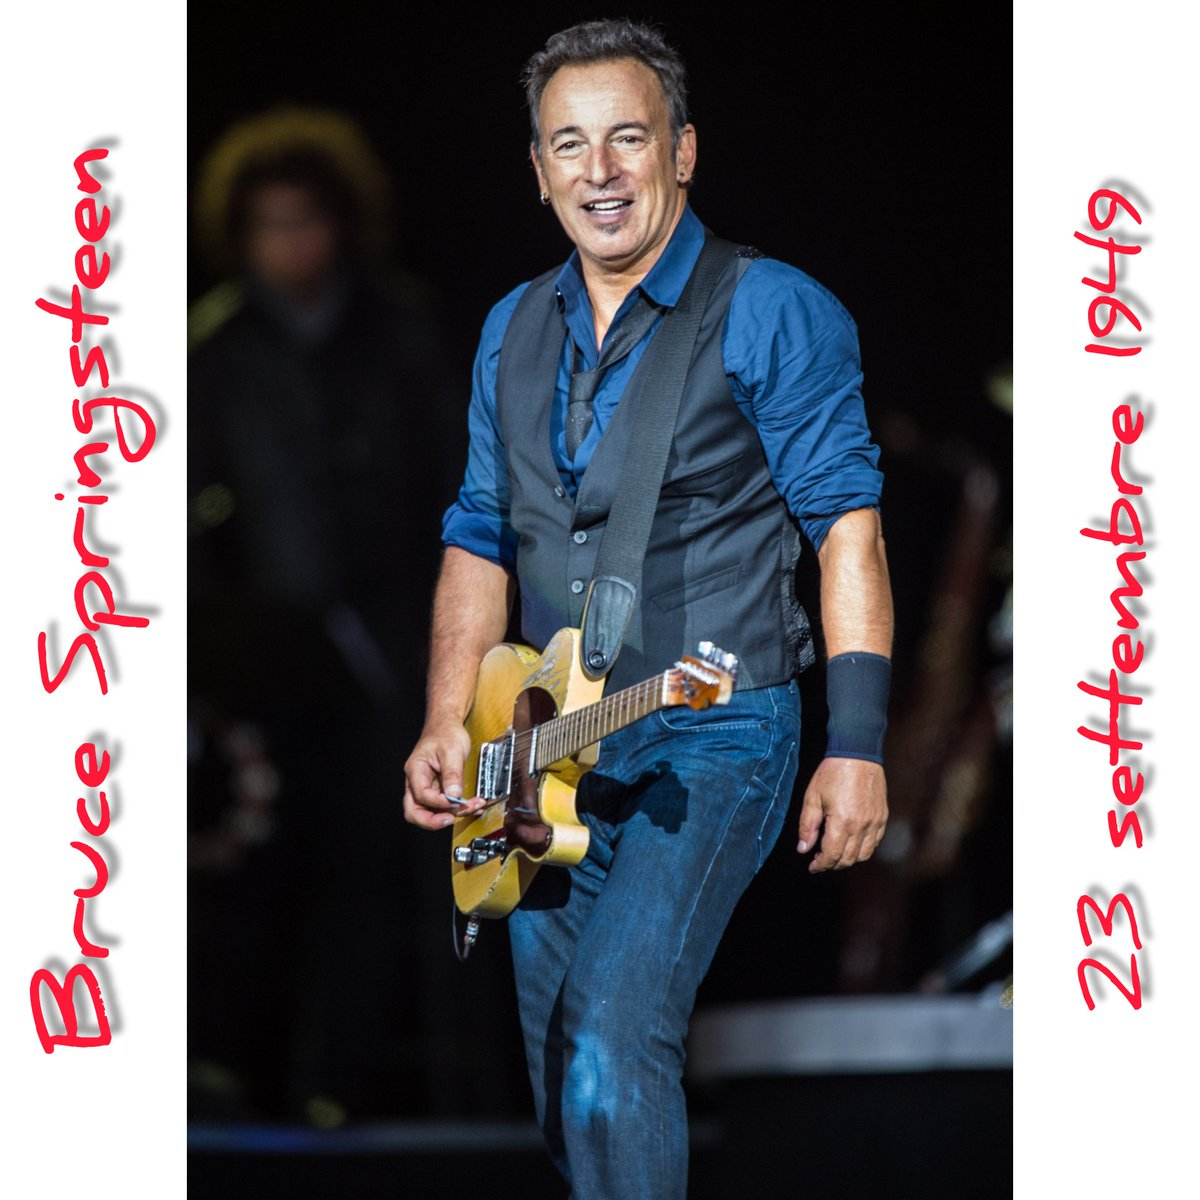 #brucespringsteen